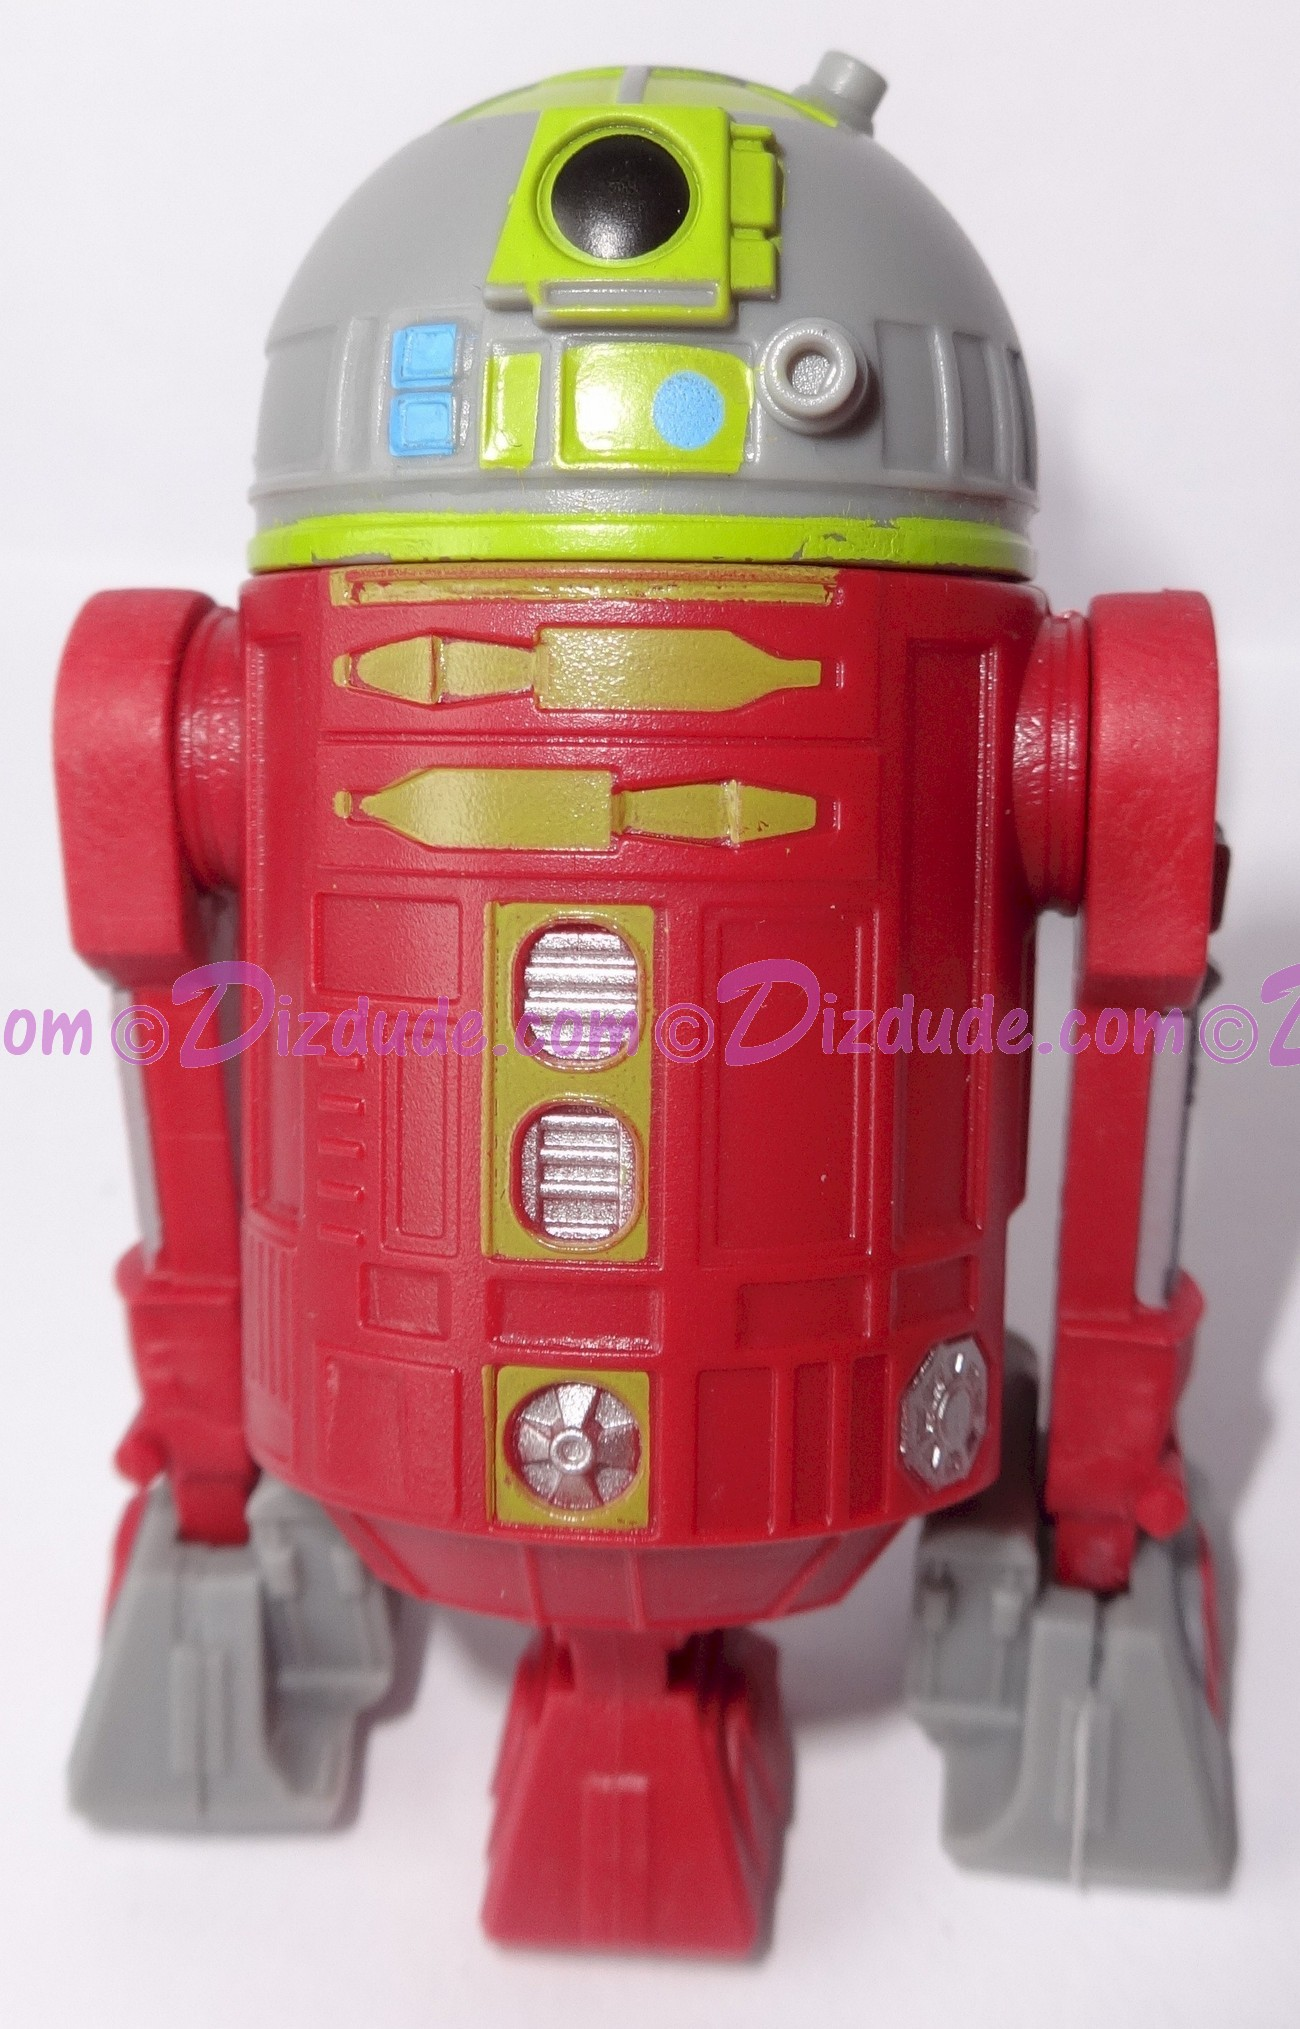 R2 Red & Gray Astromech Droid ~ Pick-A-Hat ~ Series 2 from Disney Star Wars Build-A-Droid Factory © Dizdude.com